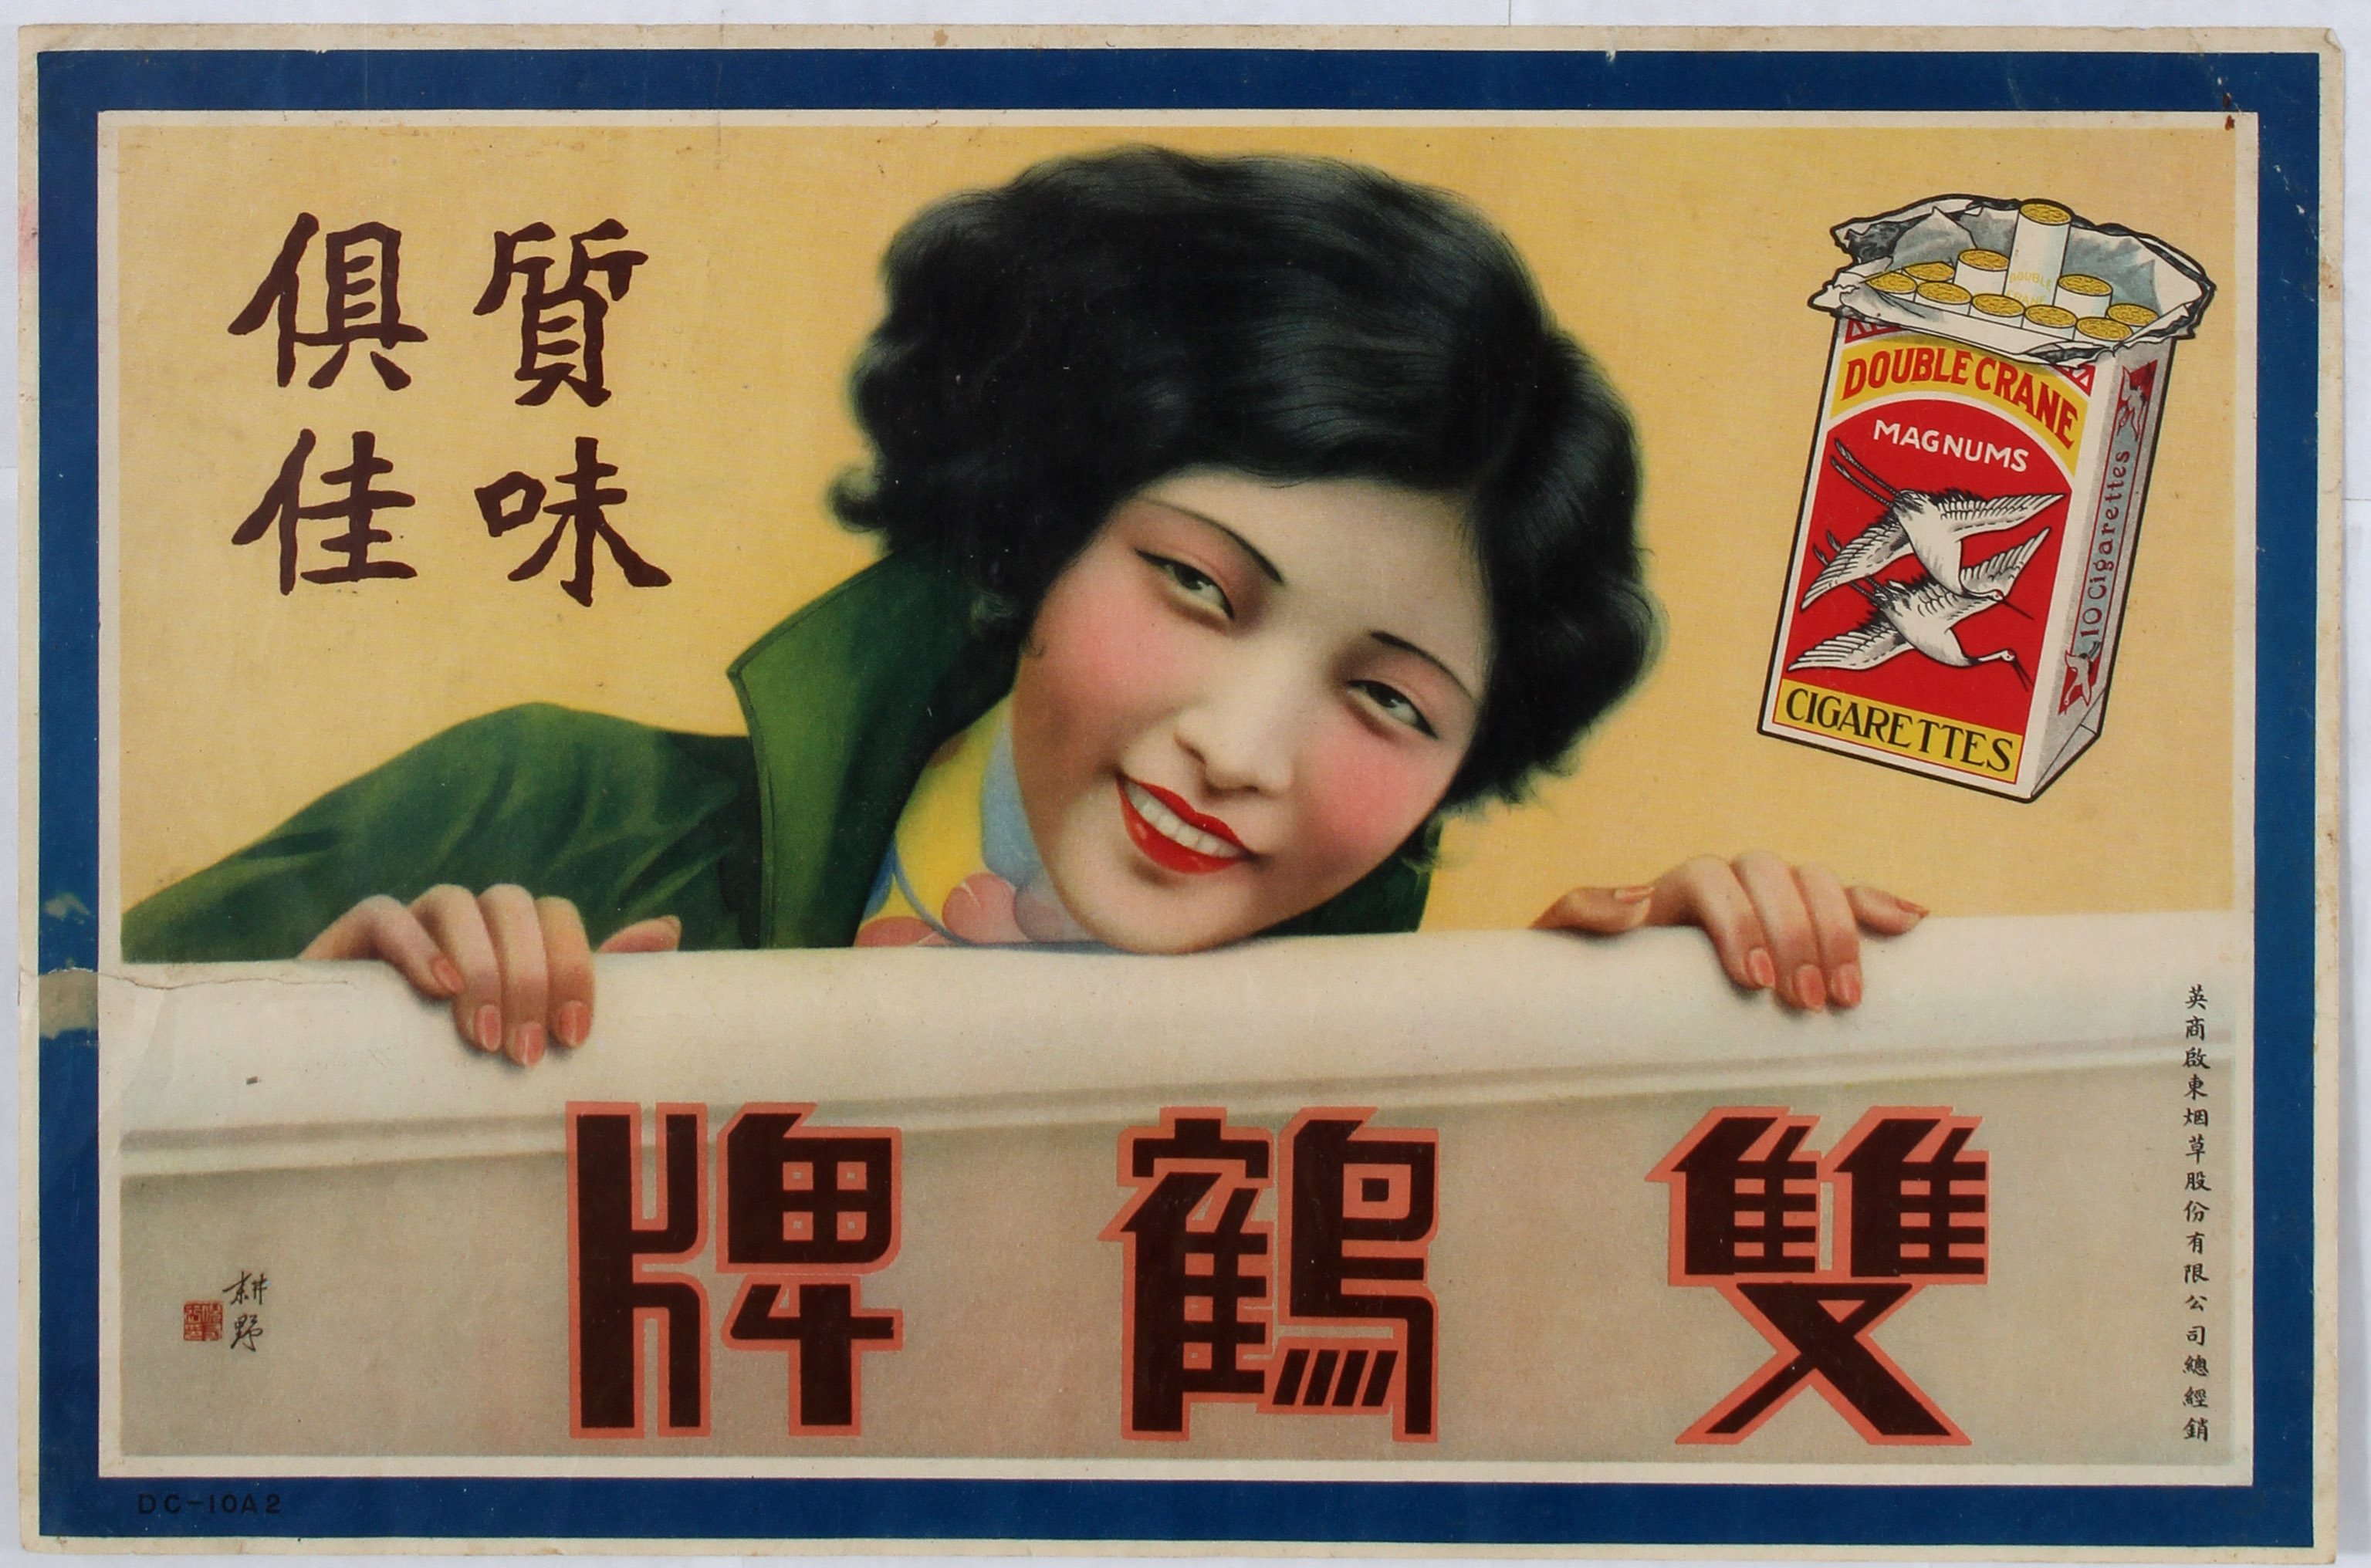 Lot 1205 - Chinese Advertising Poster for the brand of cigarettes Double Crane.